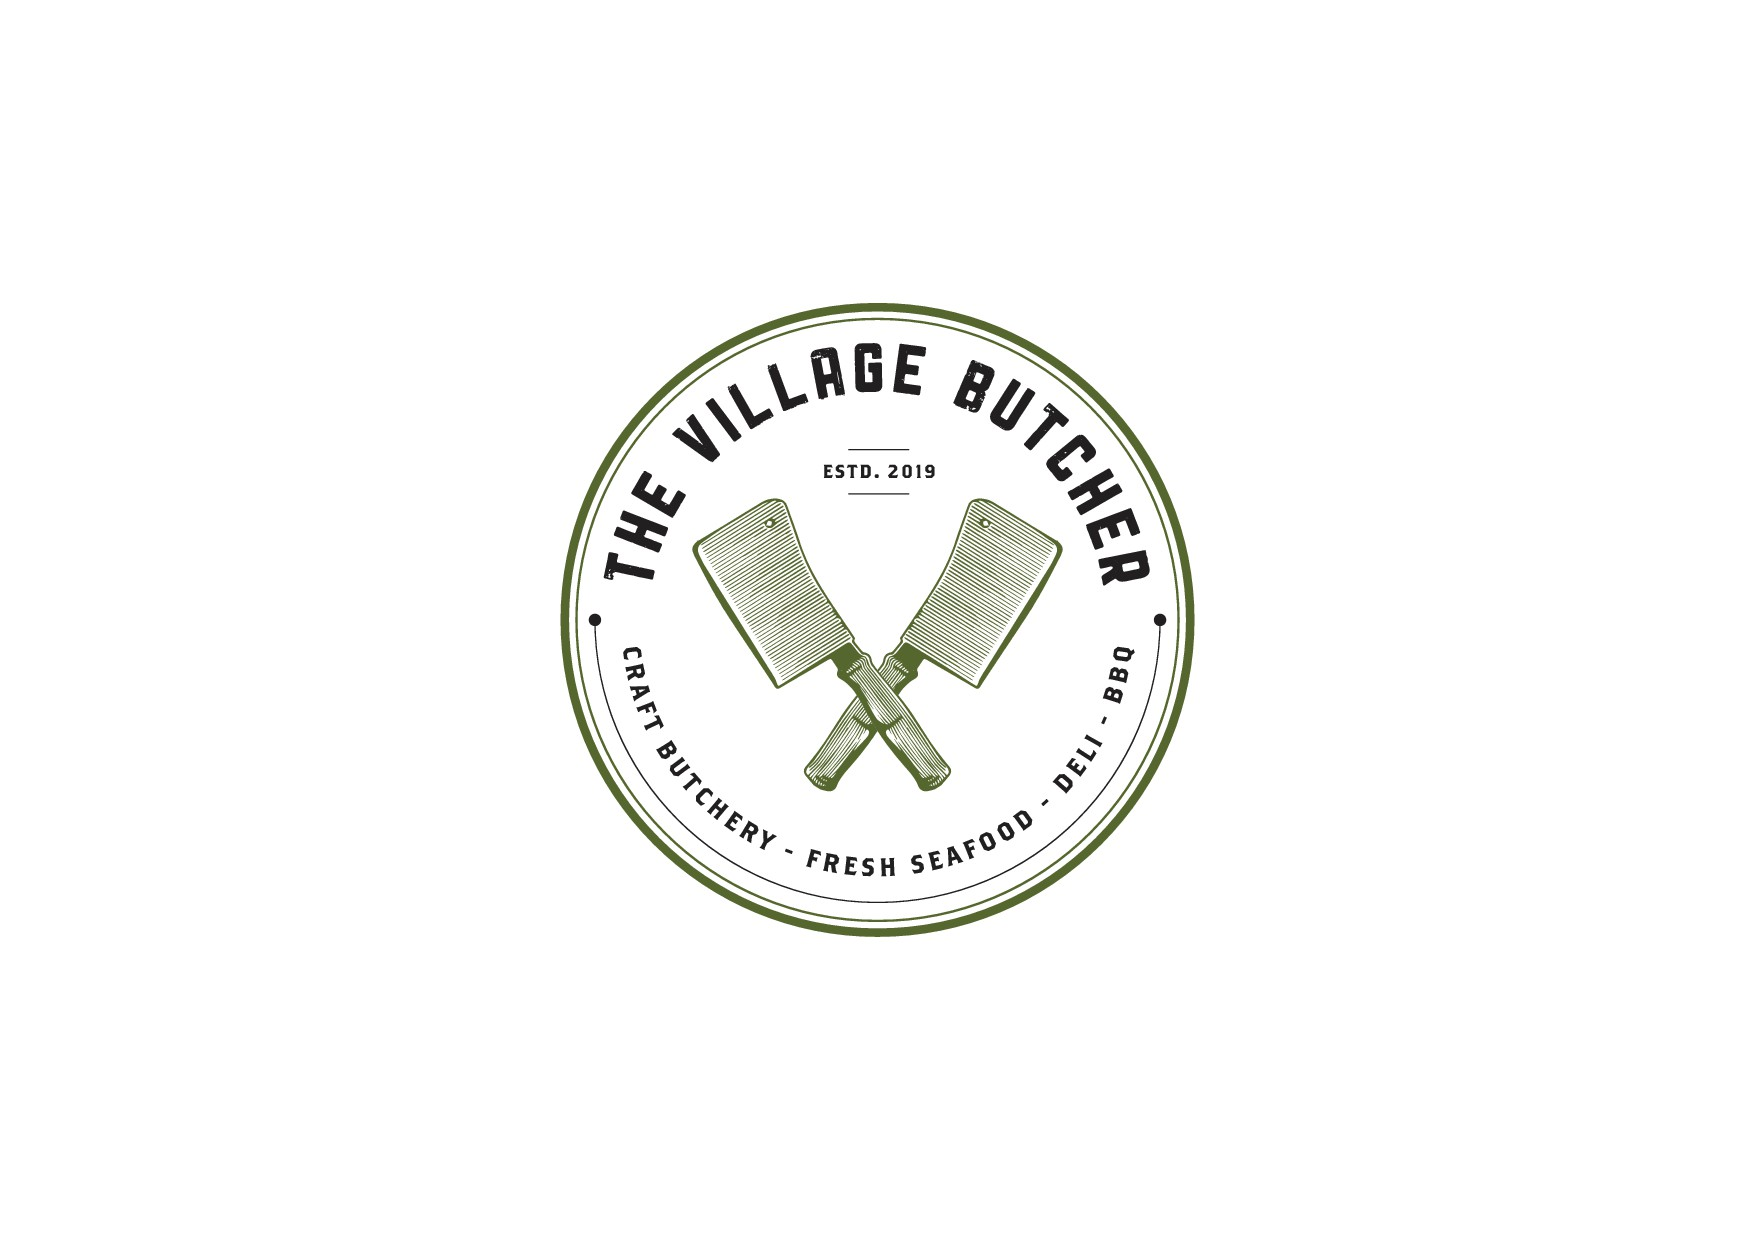 Logo for Artisan Butcher Shop just needs pro touch. Rough draft idea provided. Thanks!